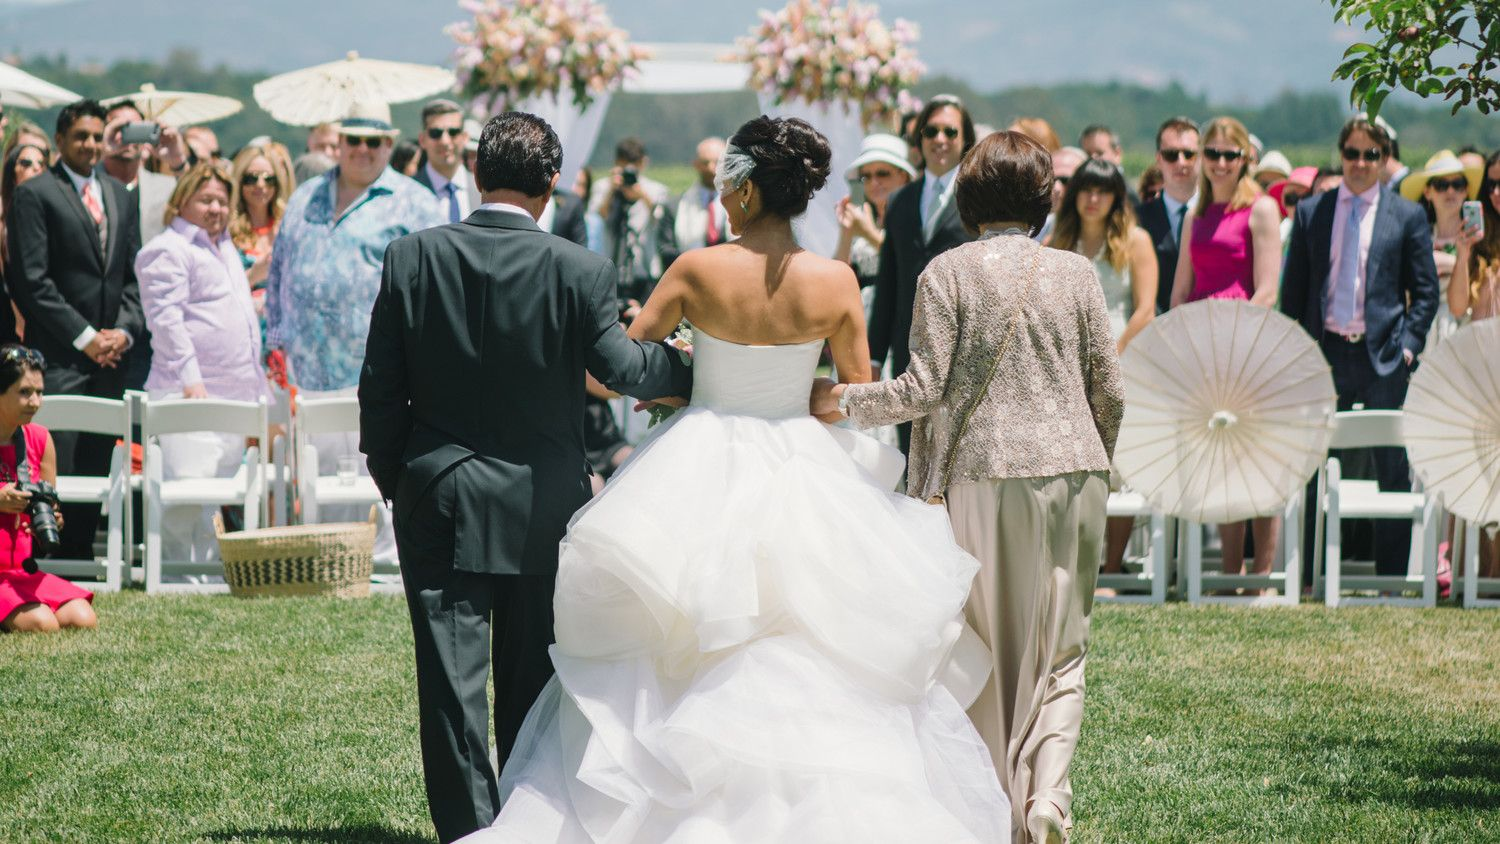 The Best Processional Songs for You and Your Wedding Party